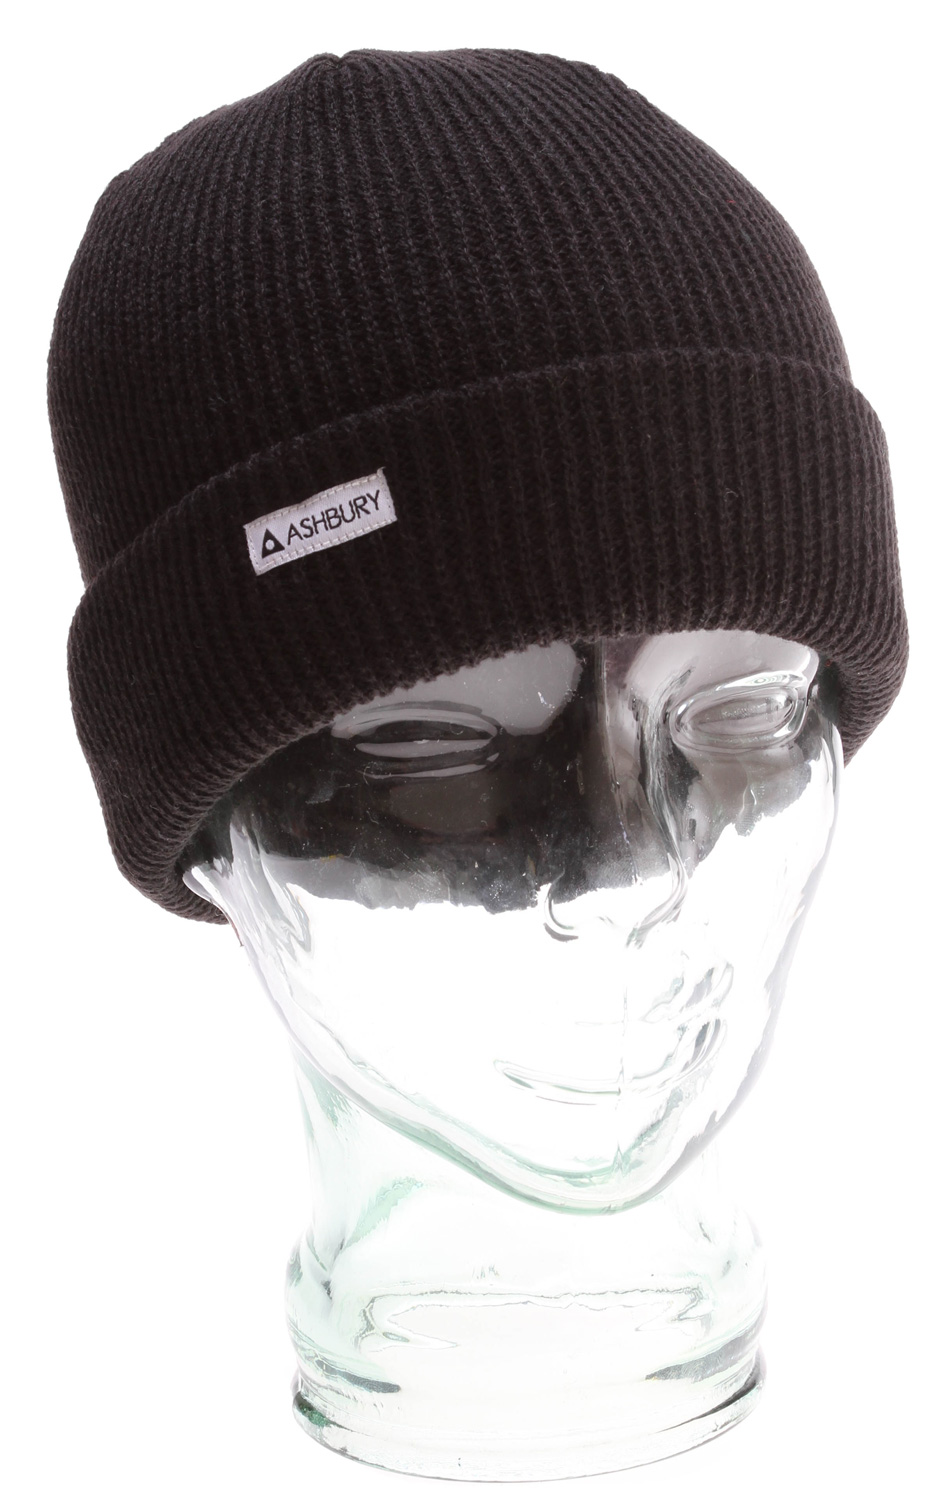 Quit jumping out on to the slopes with a hat that is worn, or torn. Try on an Ashbury The OG Beanie. Featuring the knit ribbed design and classic fit, this beanie will stay snug no matter the head. Bring it boarding or skiing, or just around town on the cold days, this breathable beanie will keep your skull at just the right temps!Key Features of the Ashbury The OG Beanie: Knit ribbed beanie Fine acrylic Woven label - $12.95